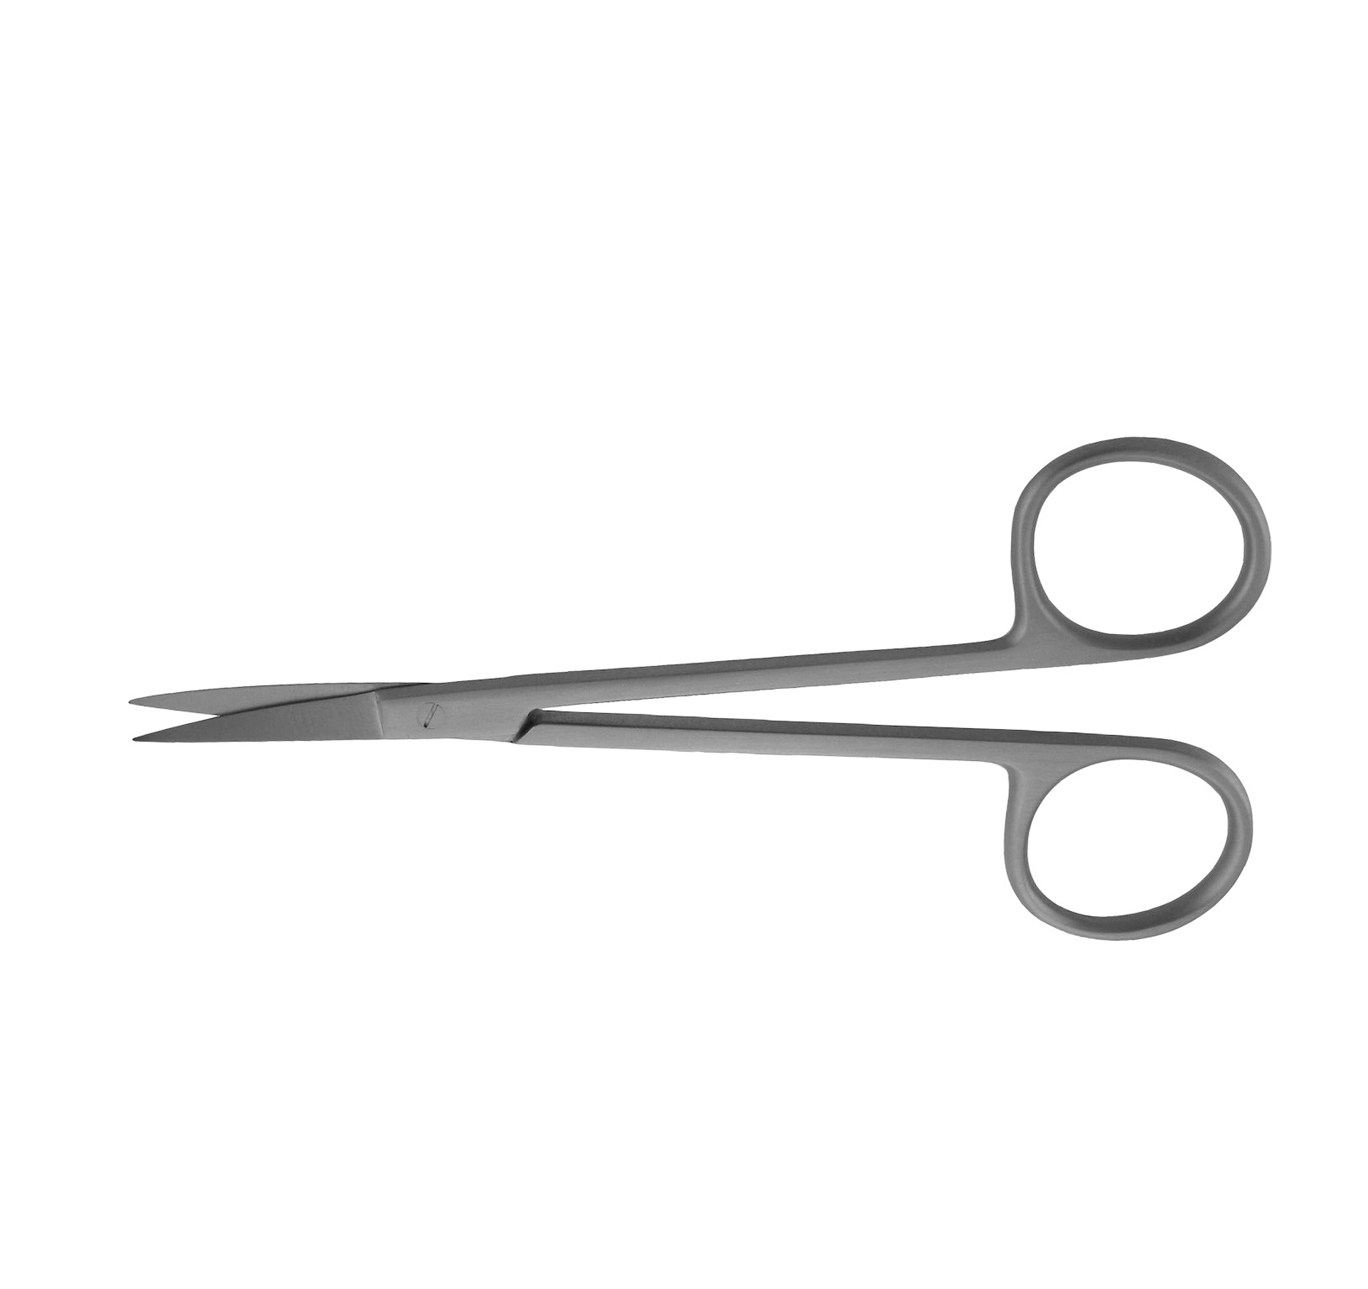 "DEVEMED Operating scissor 11.5 cm ""Iris"", SUPER CUT, curved-0"